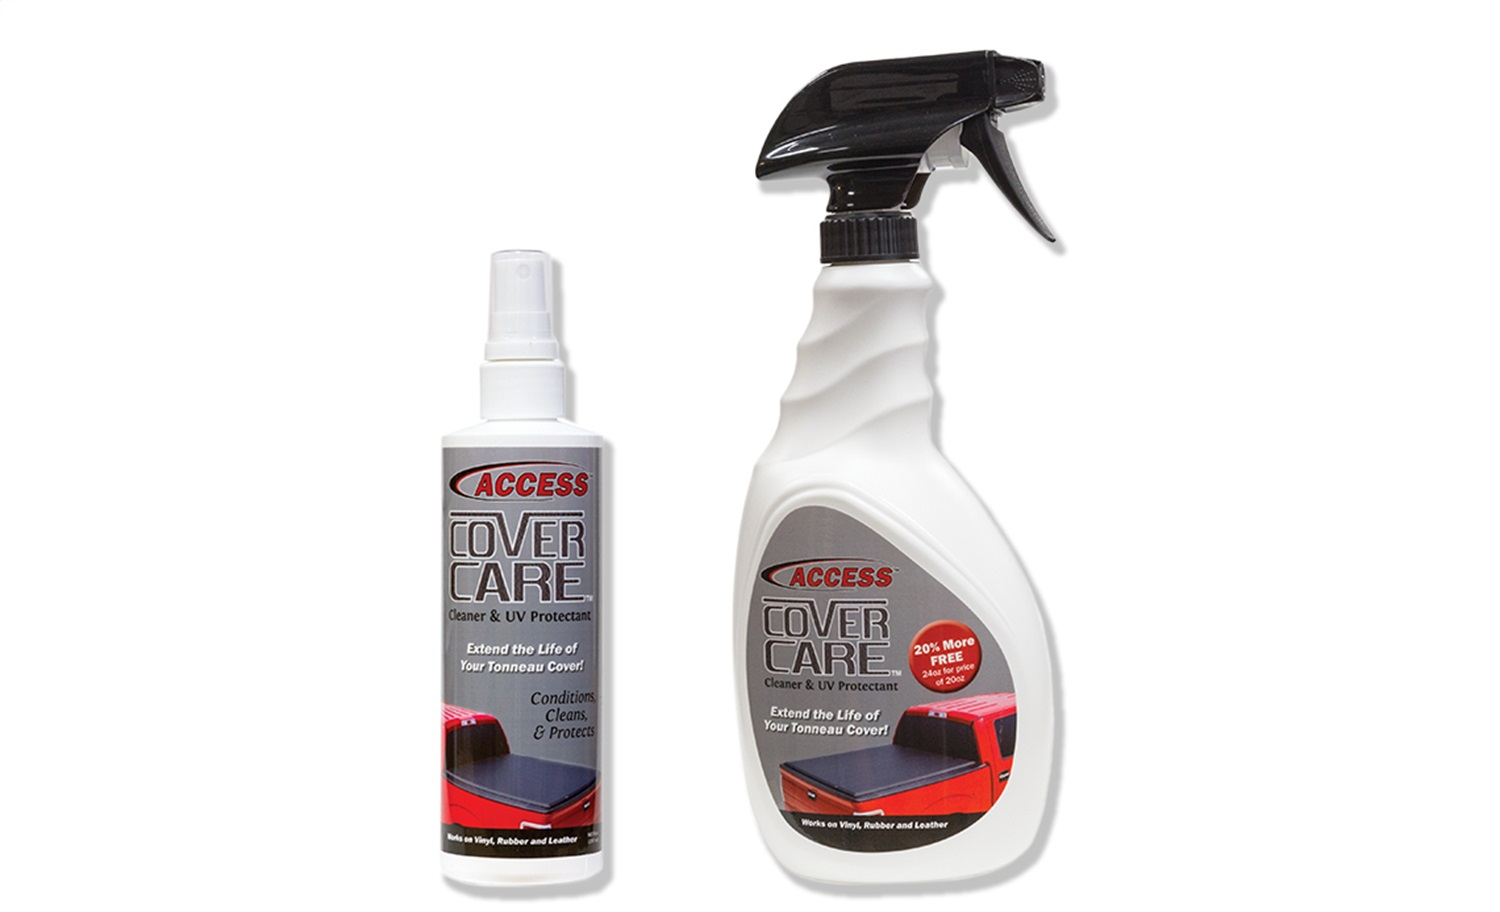 Access Cover 30919 ACCESS COVER CARE Cleaner